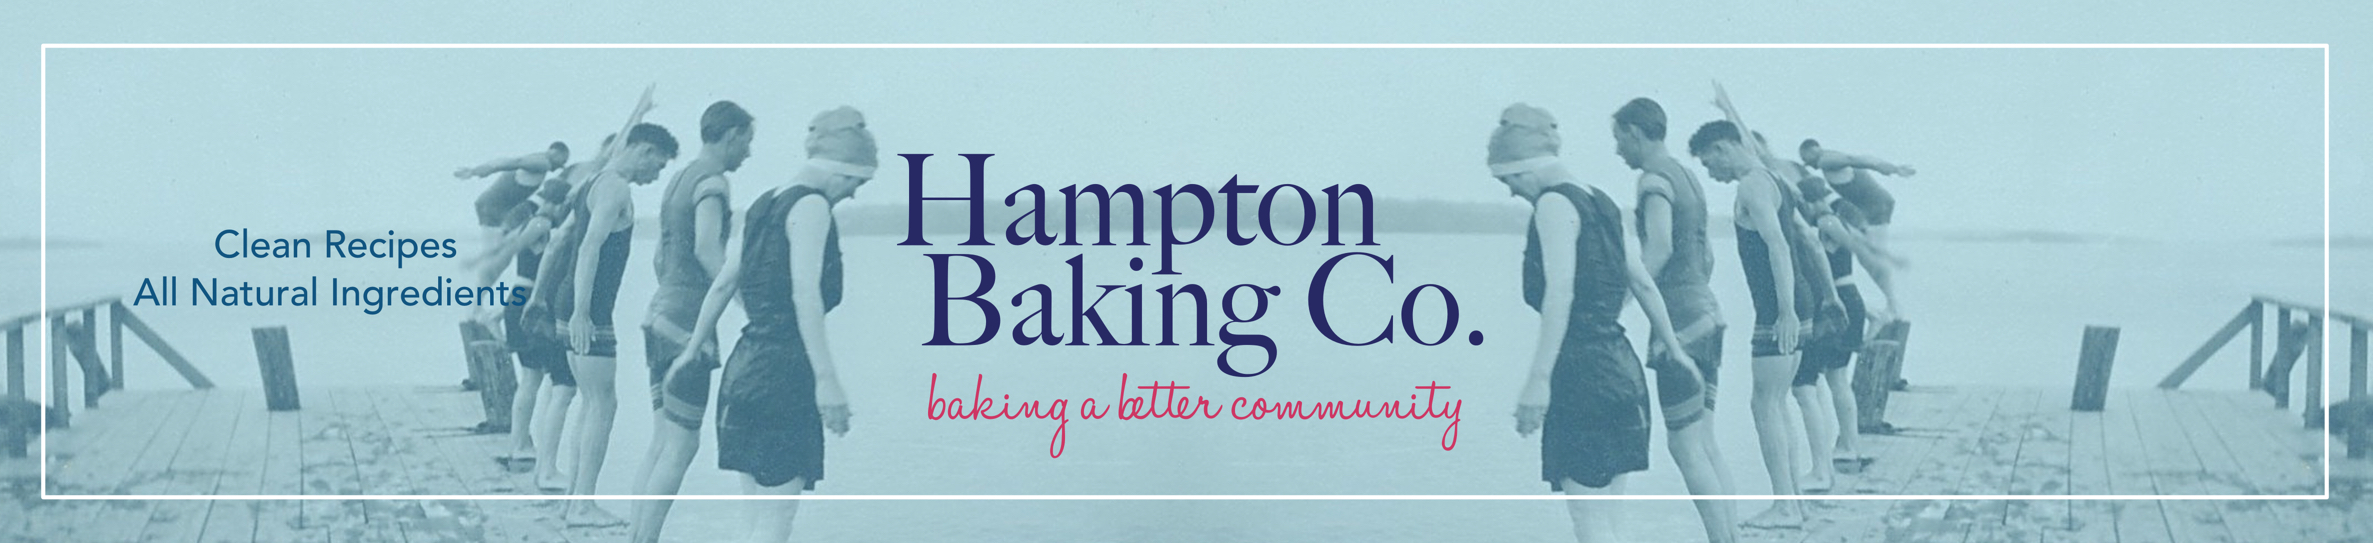 Hampton Baking Co.